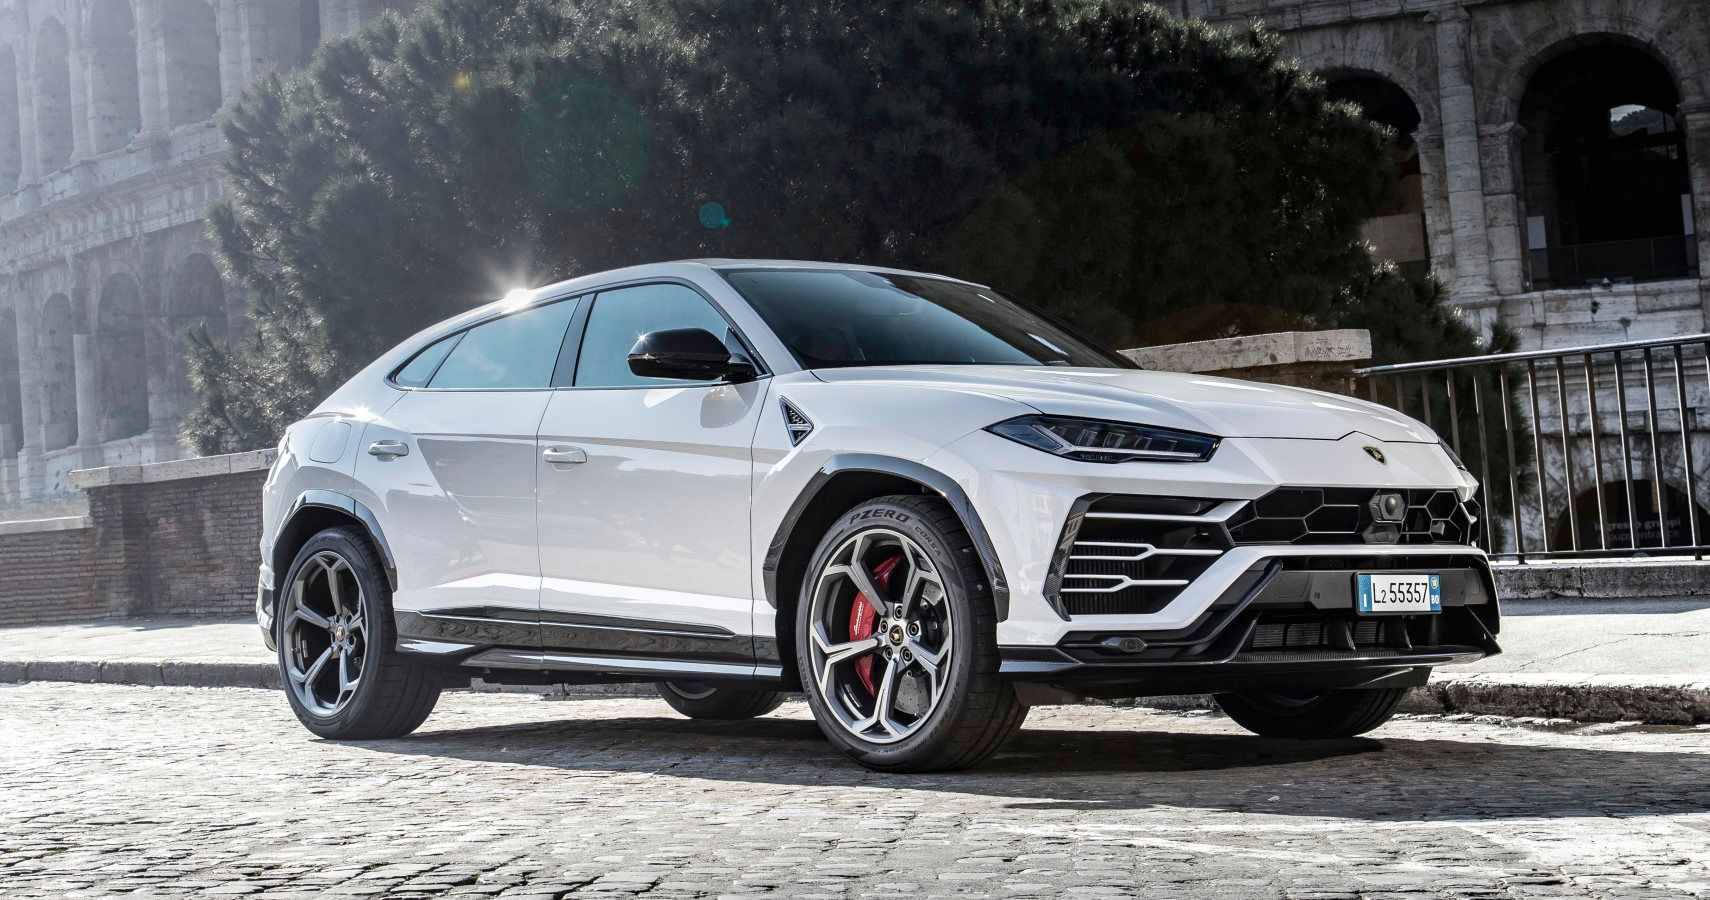 2020 Porsche Cayenne Coupe GT5 Gets Lambo Urus Engine >> Performance Version Of The Lamborghini Urus Is Under Development